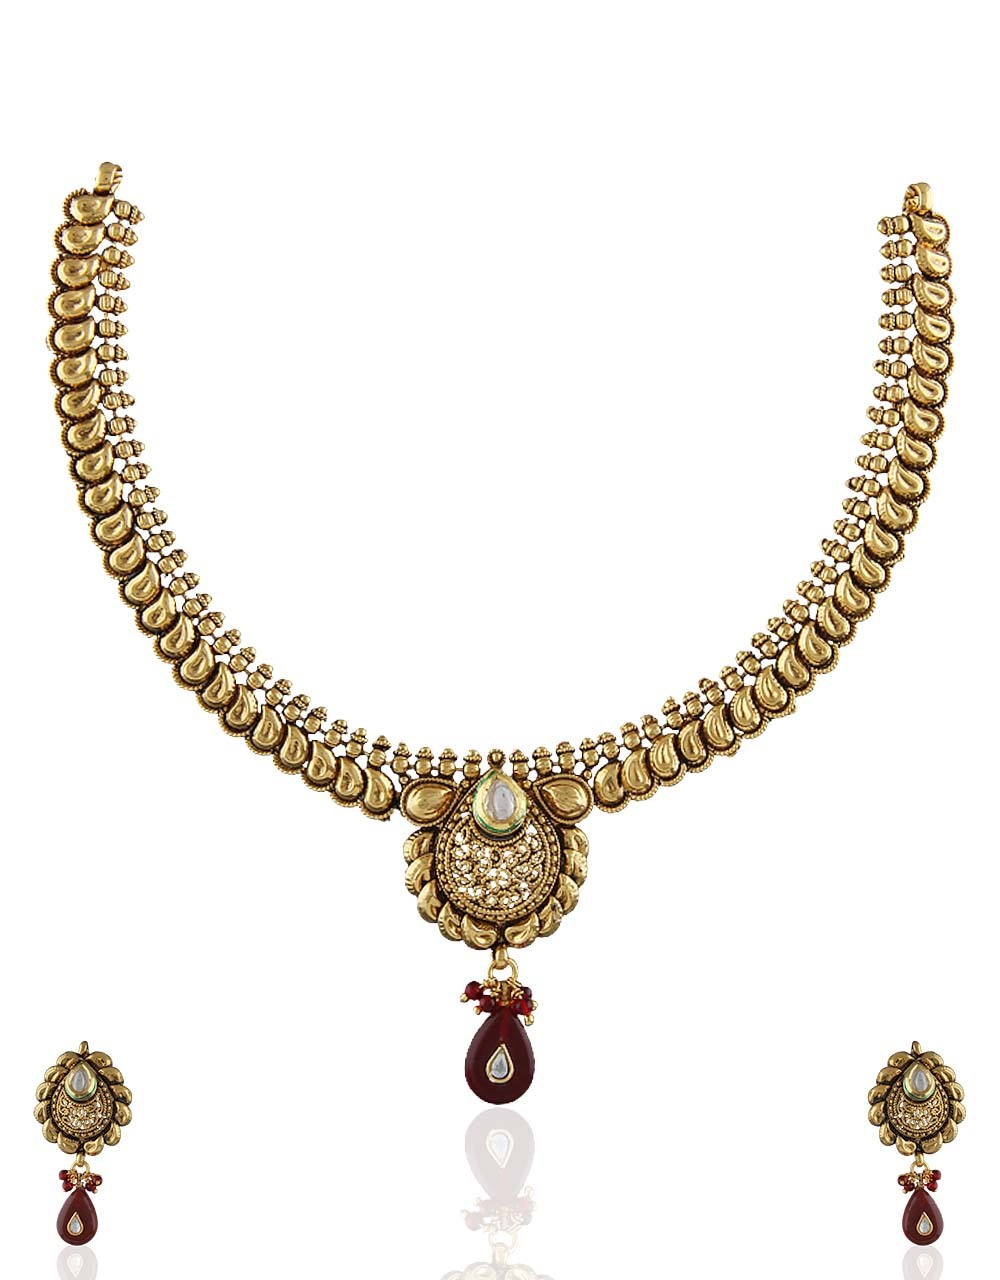 Maroon Drop Styled Antique Gold Tone Necklace